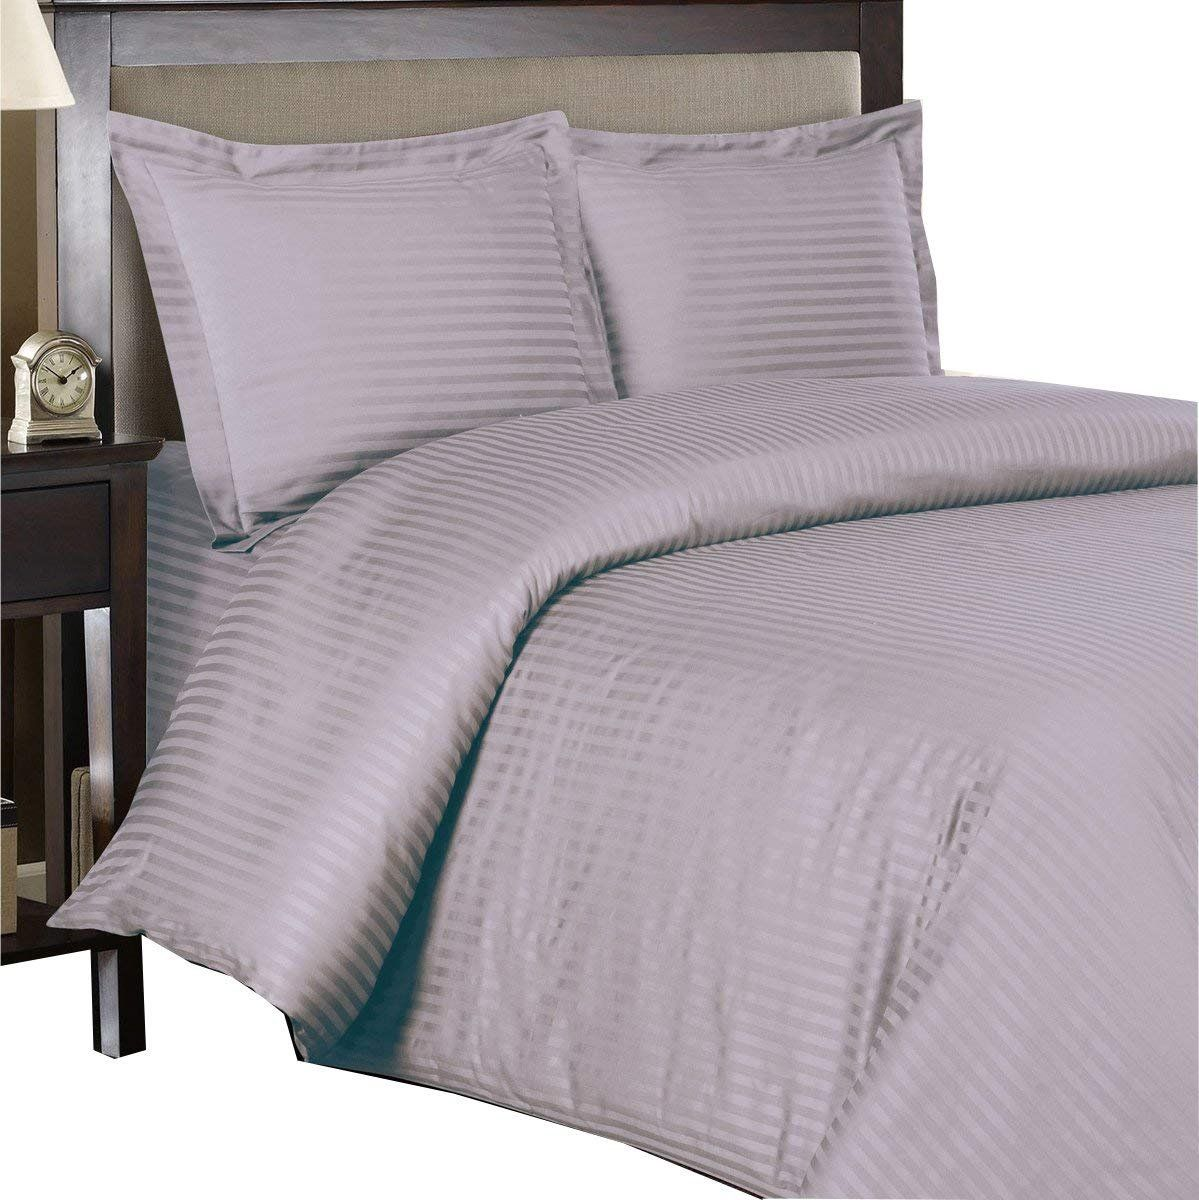 Royal Hotel S 8pc Queen Size Bed In A Bag Striped Lilac